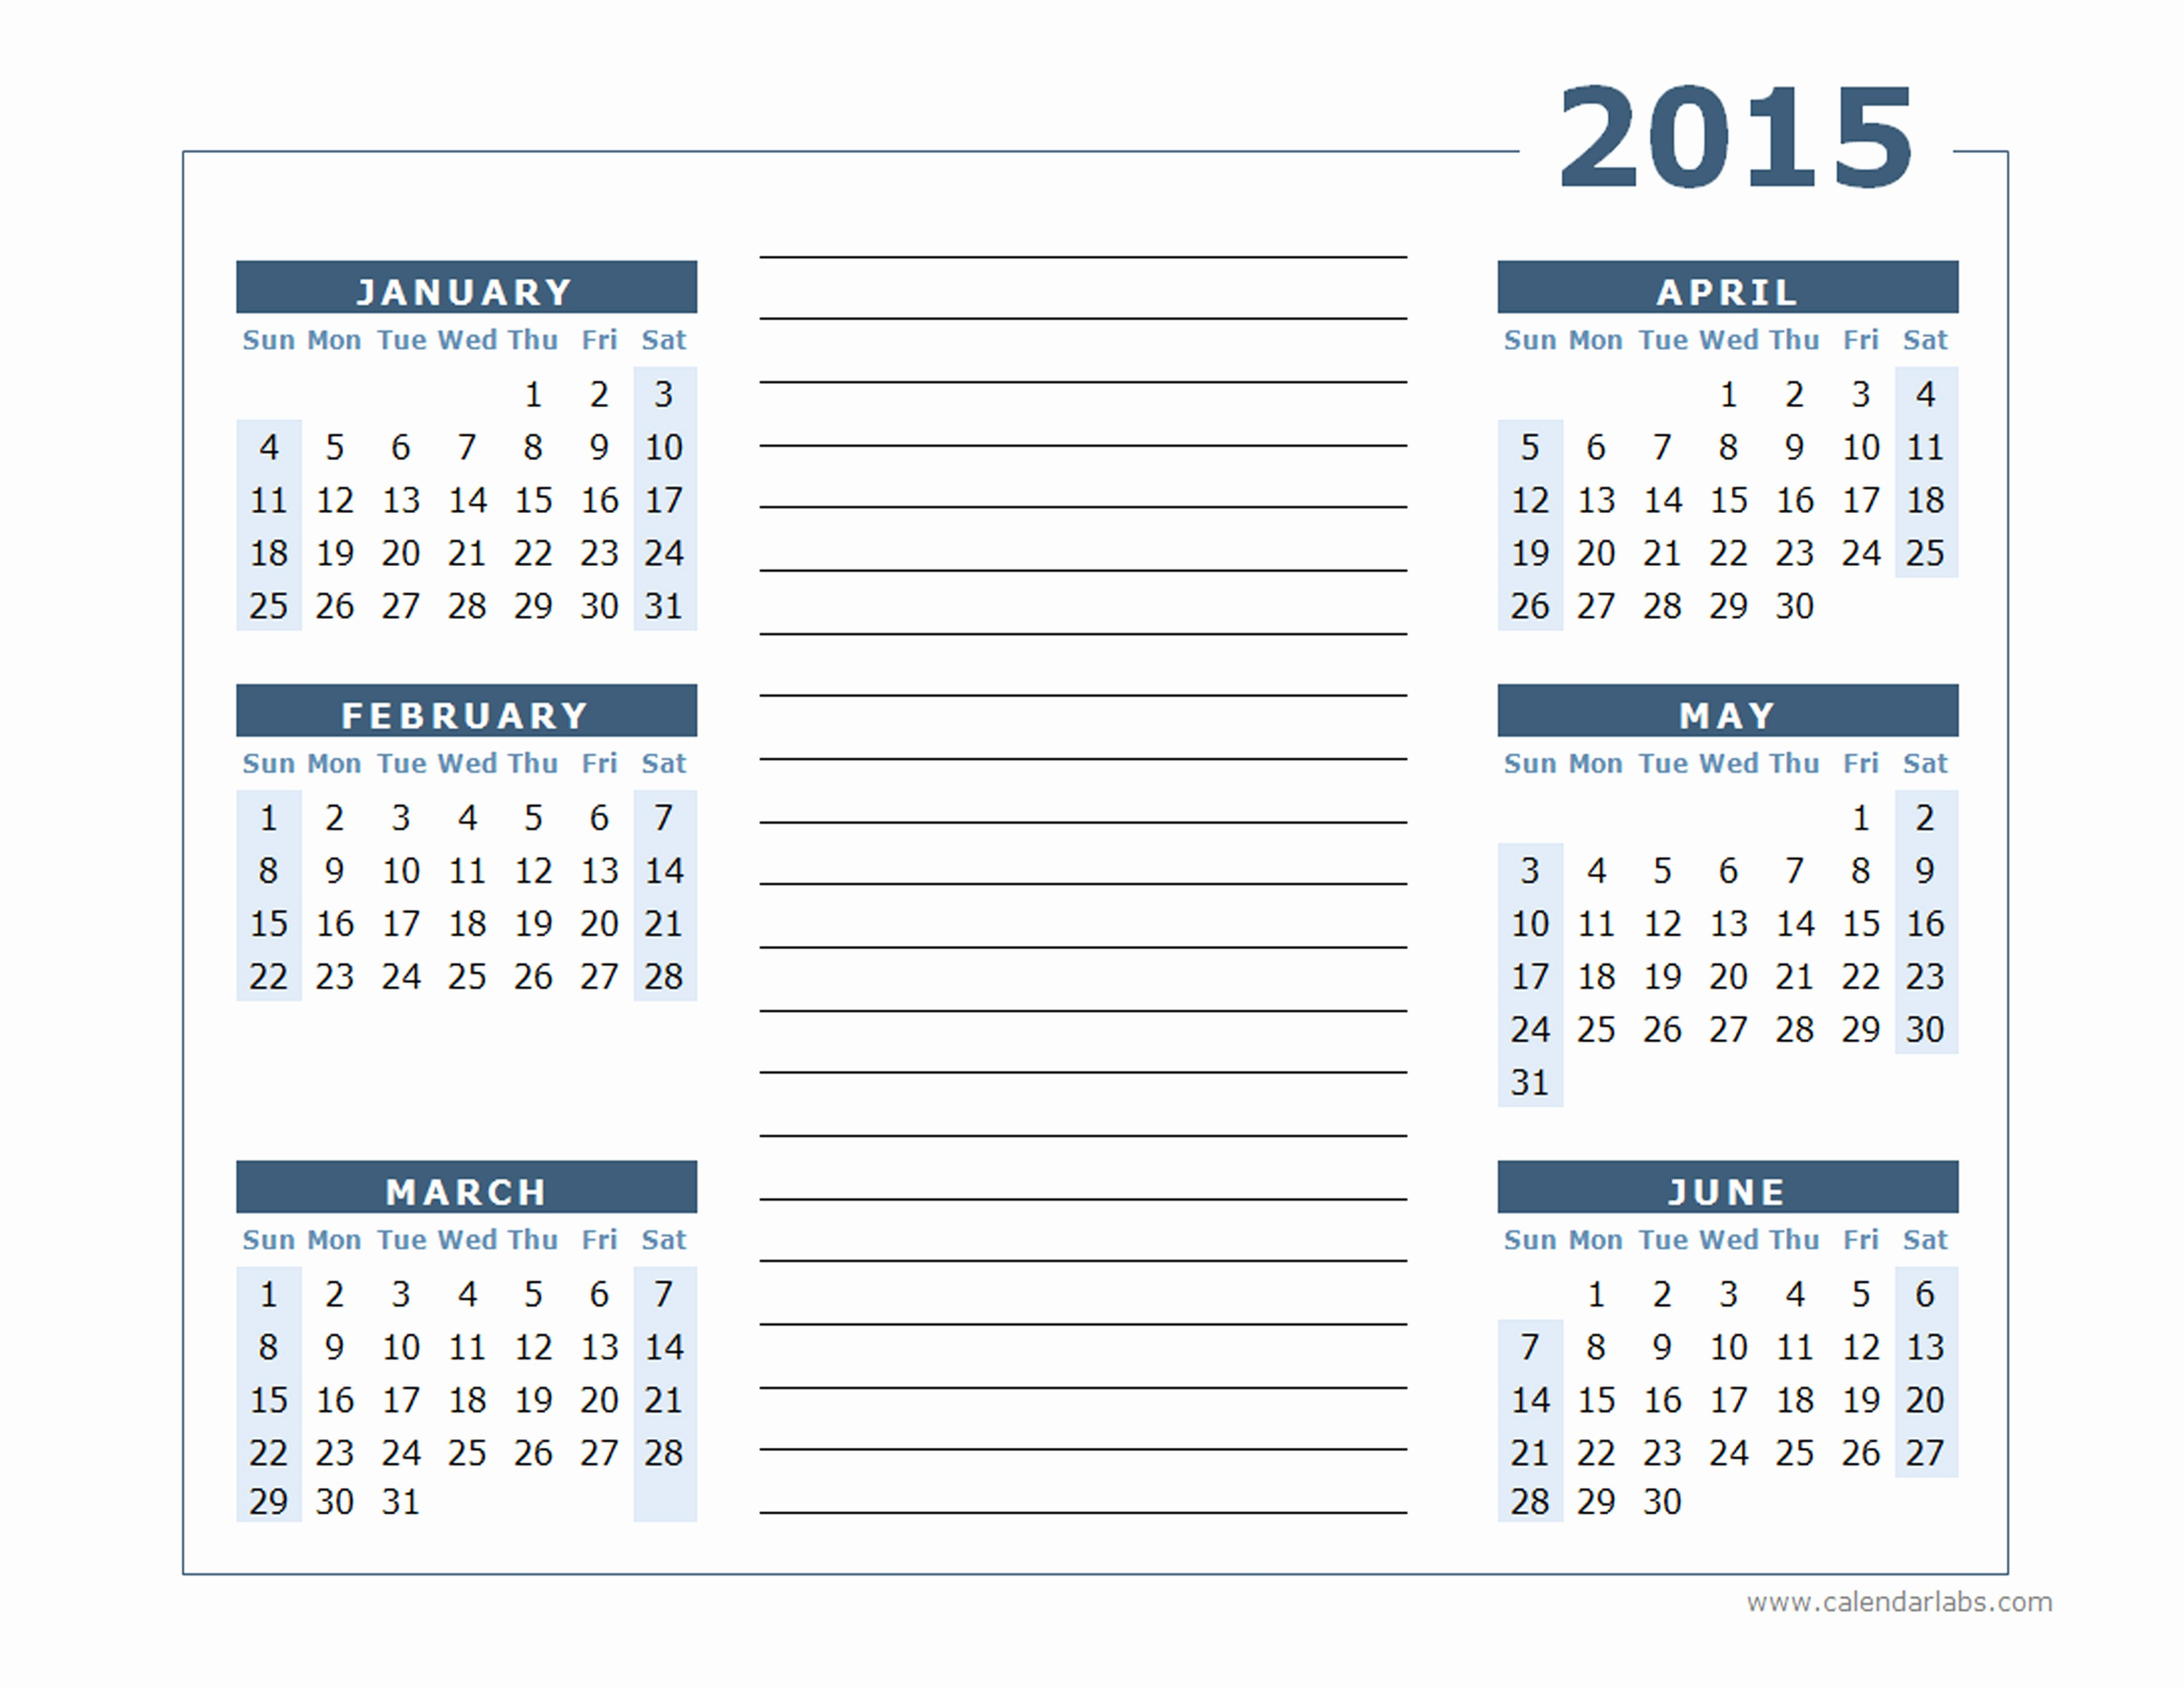 Free Yearly Calendar Templates 2015 Luxury 2015 Yearly Calendar Two Page Free Printable Templates